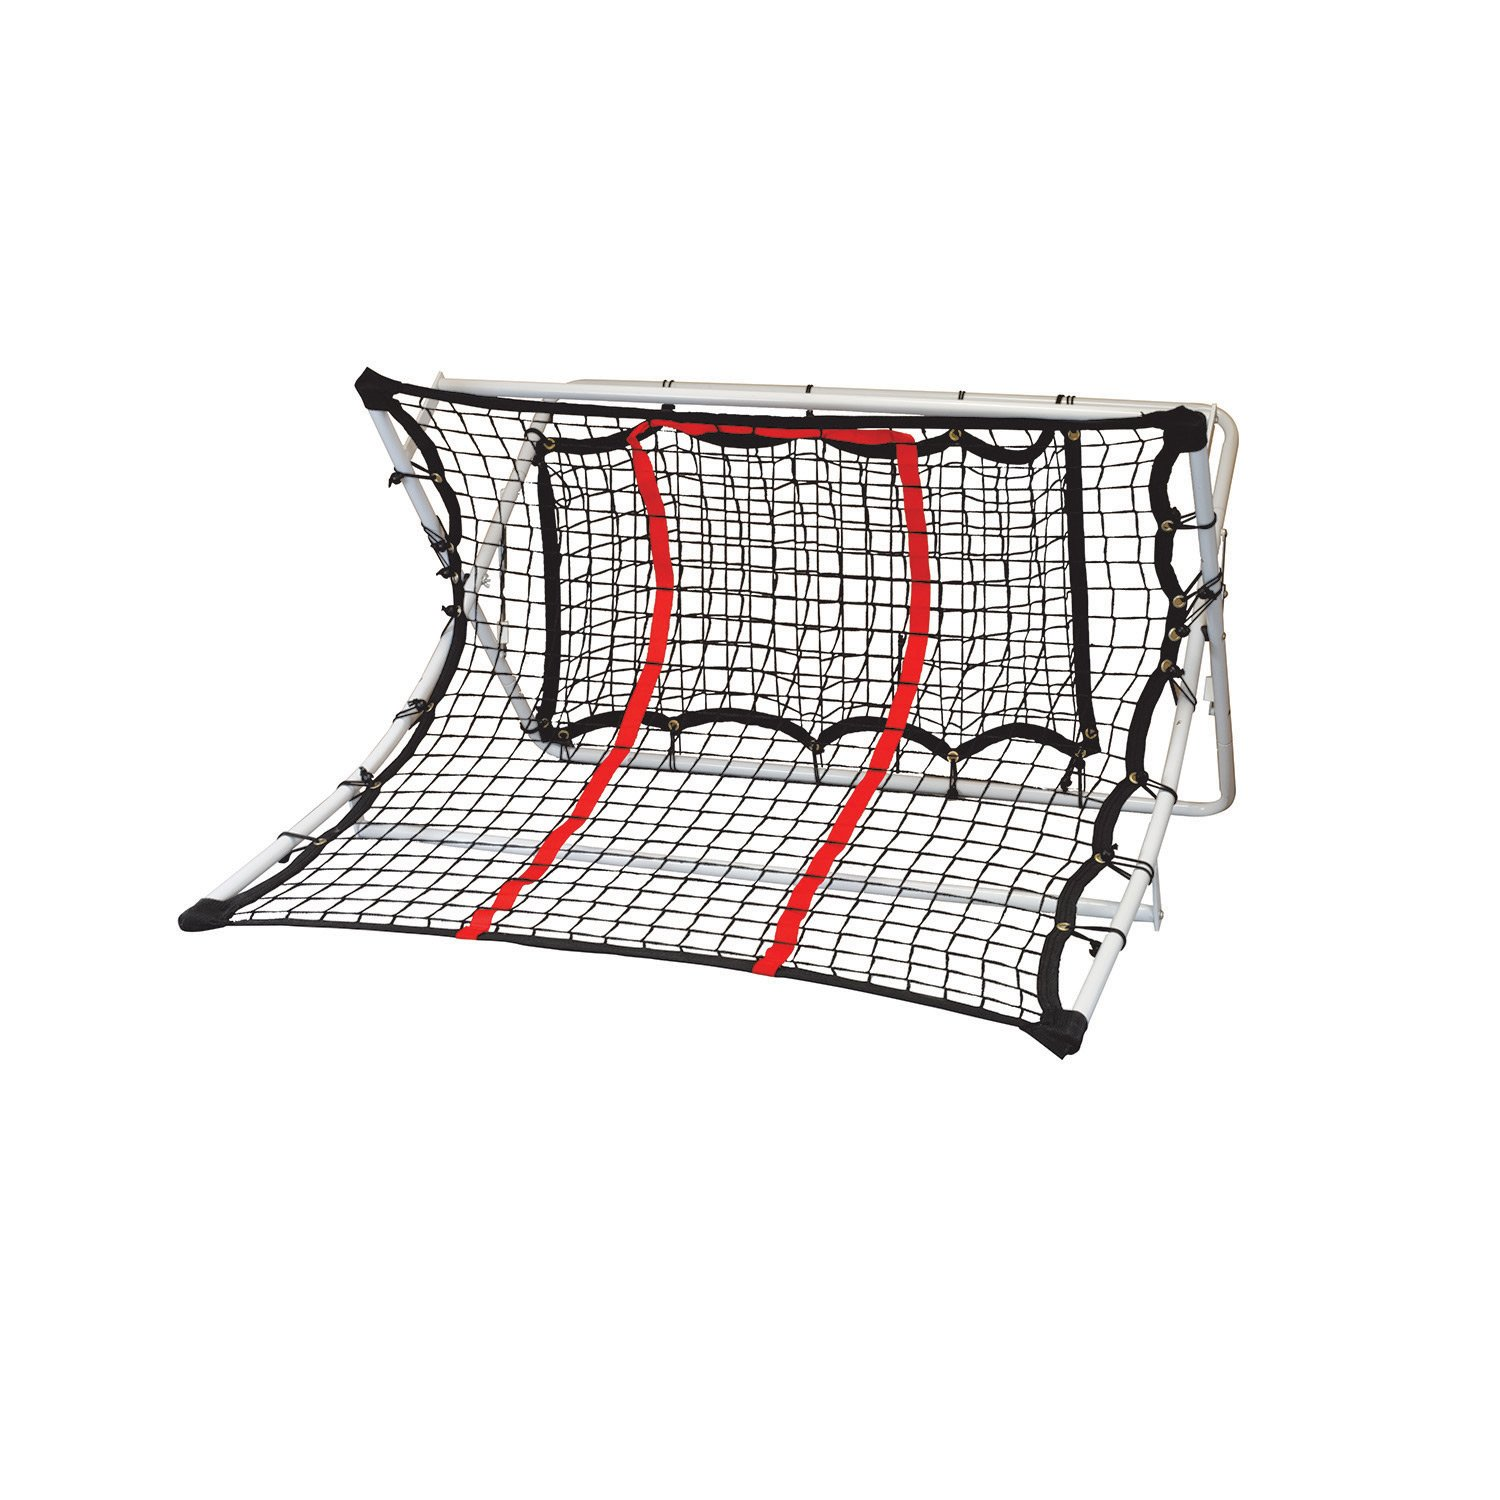 Franklin Sports MLS Soccer 2 In 1 X-Ramp - Soccer Trainer Rebounder - 44 x 41 x 25 Inches